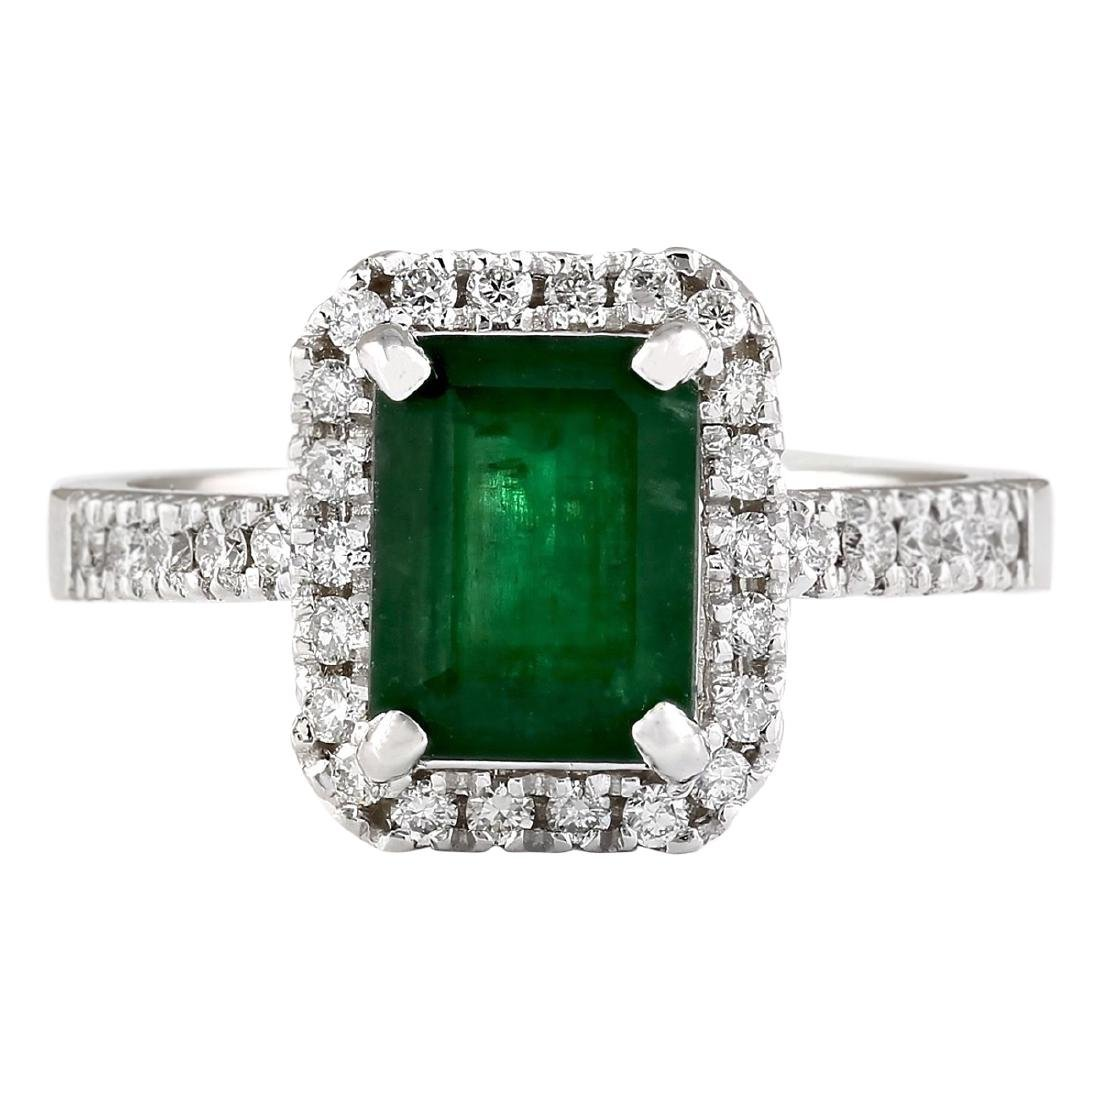 2.64 CTW Natural Emerald And Diamond Ring In 18K White